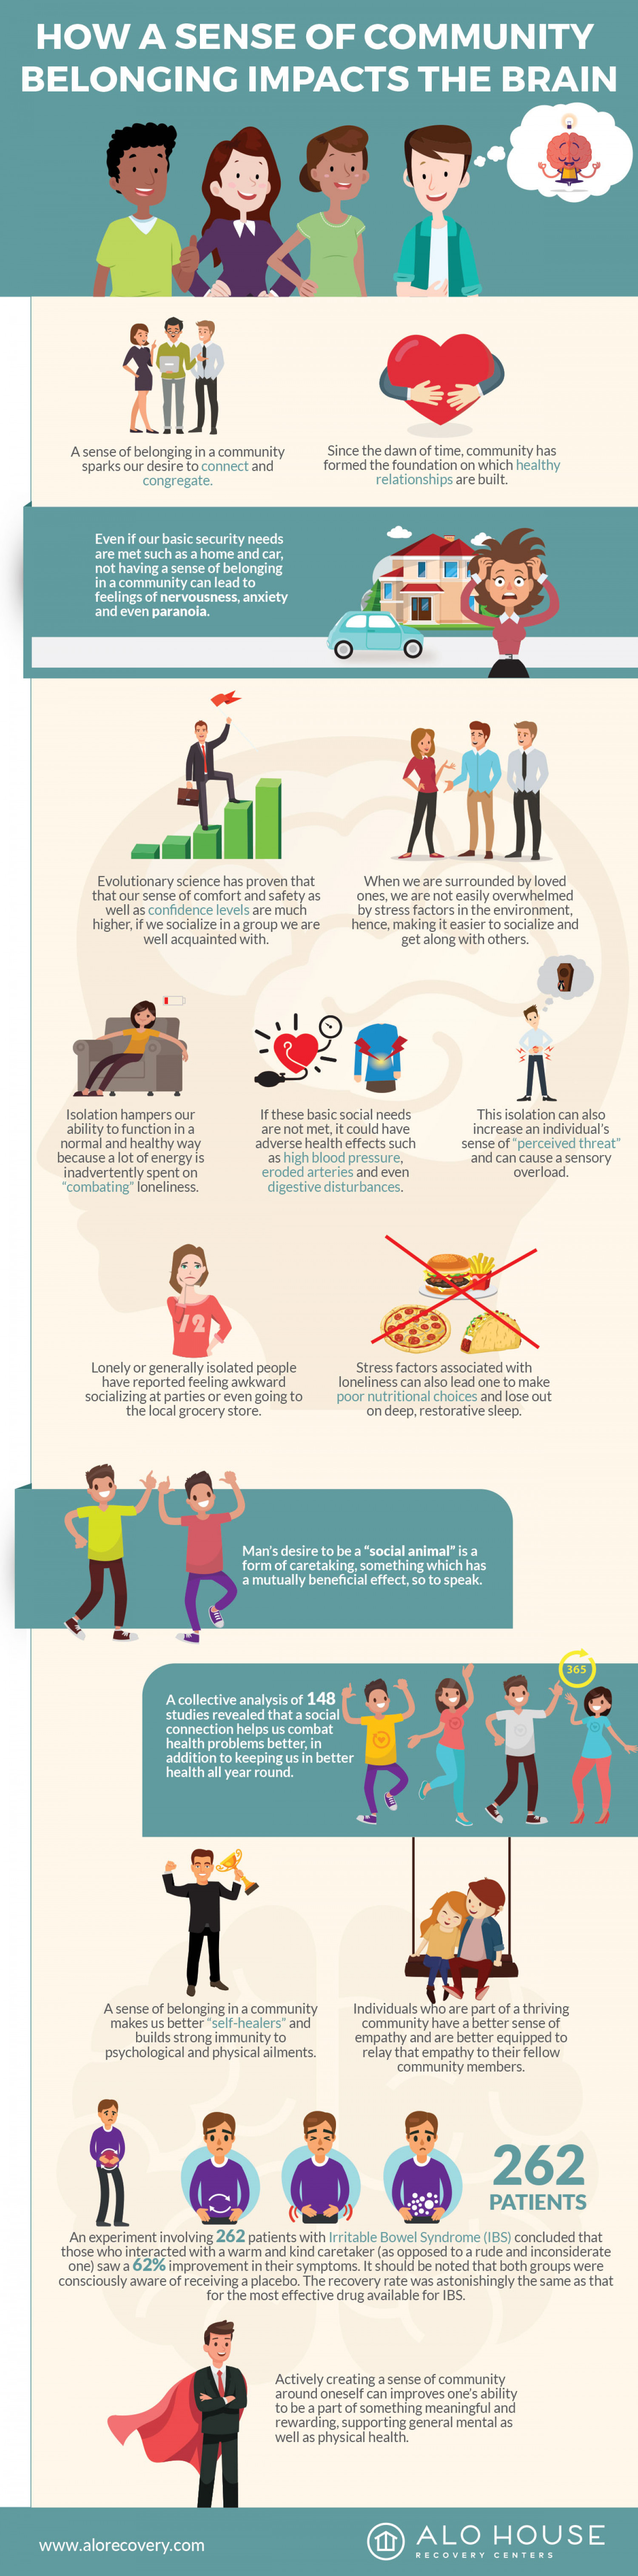 HOW A SENSE OF COMMUNITY BELONGING IMPACTS THE BRAIN Infographic